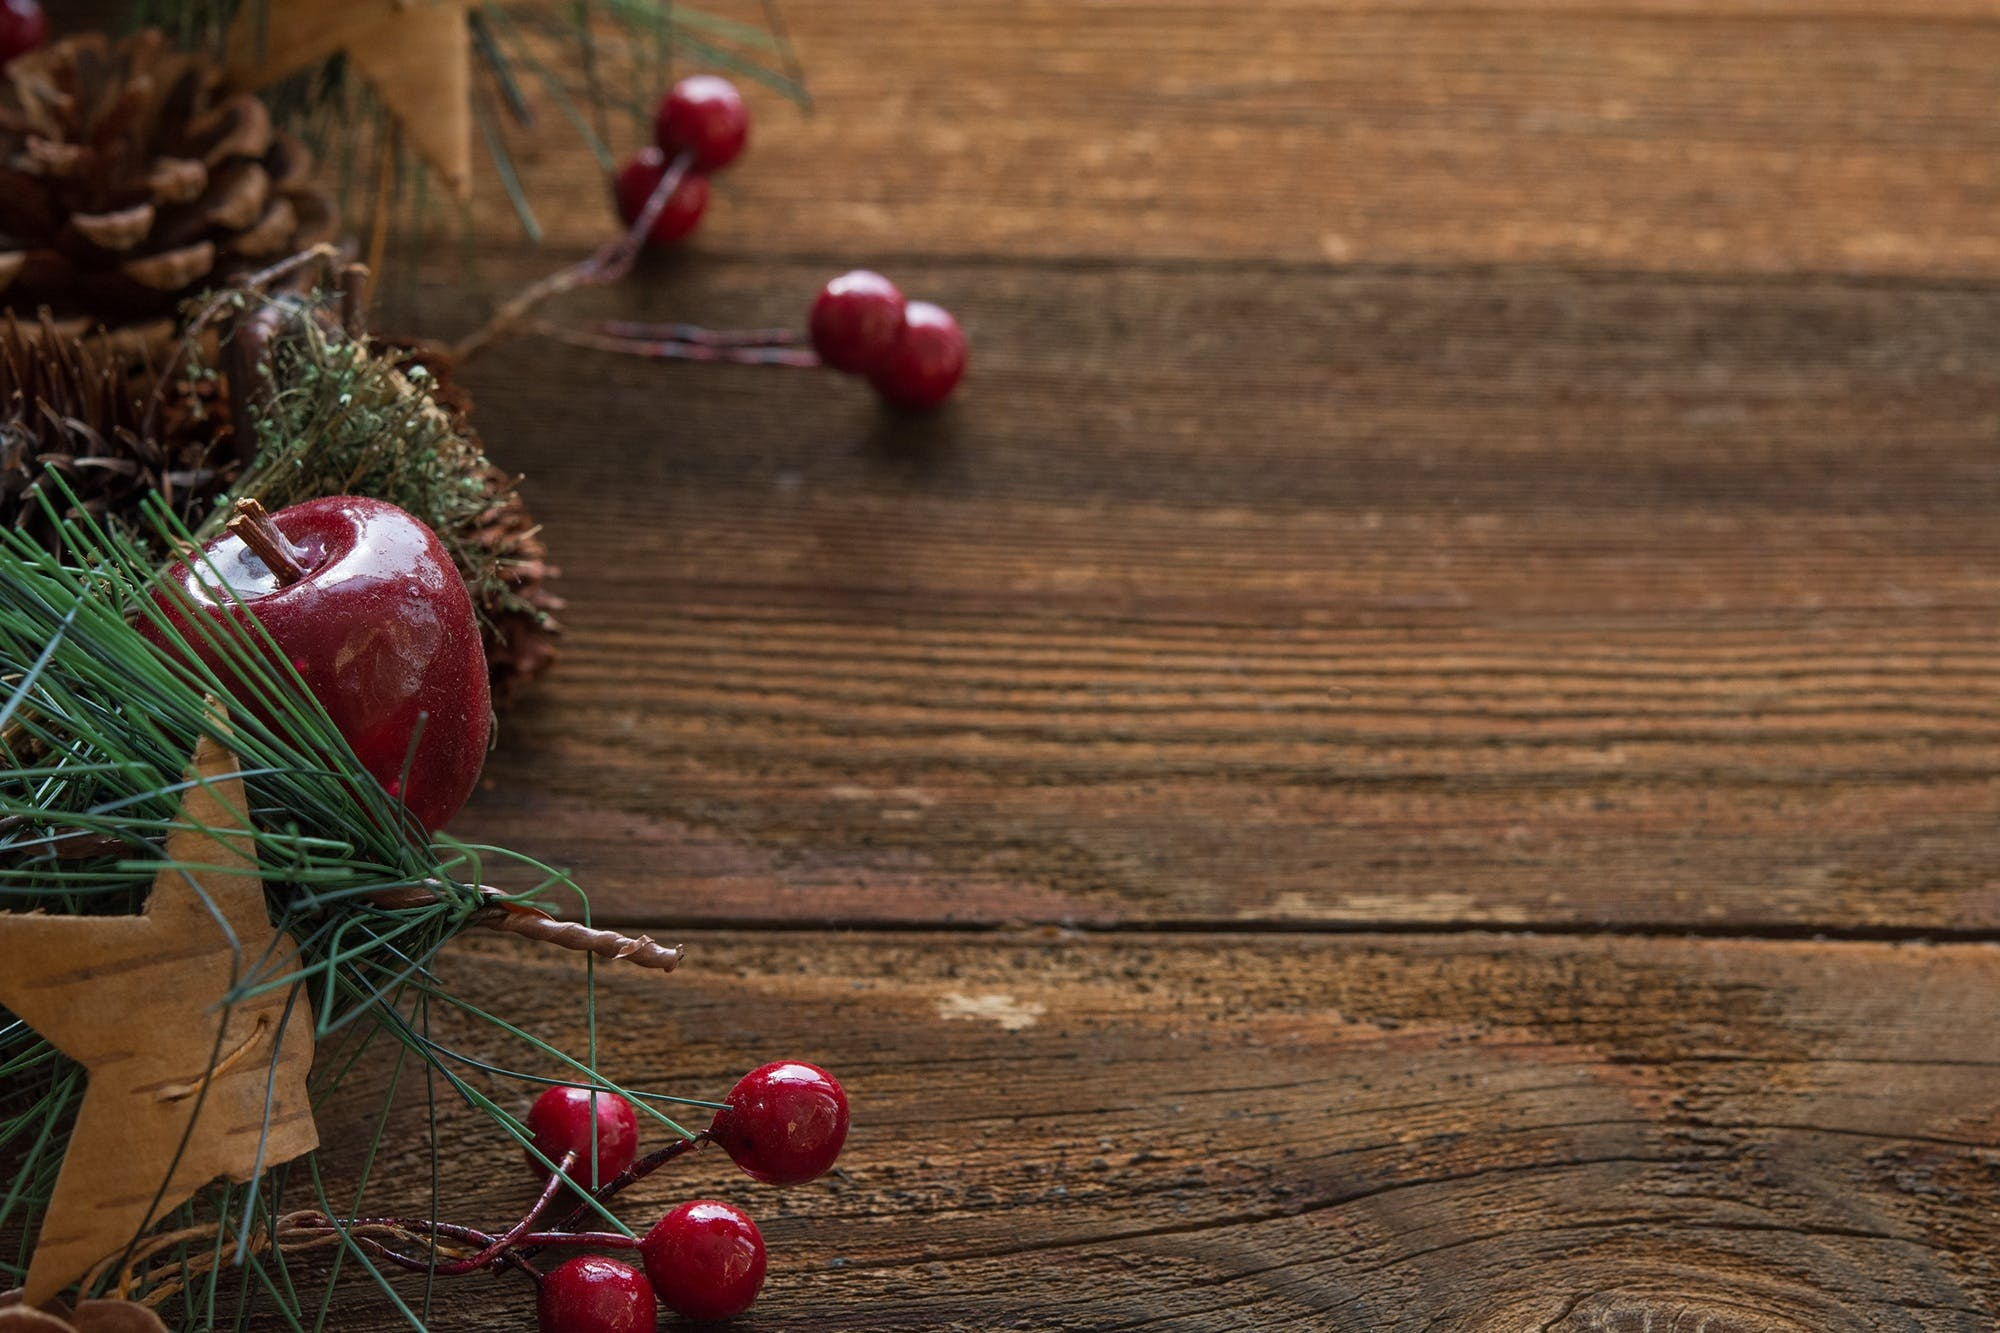 Apple and Cherry Fruits on Wood Plank